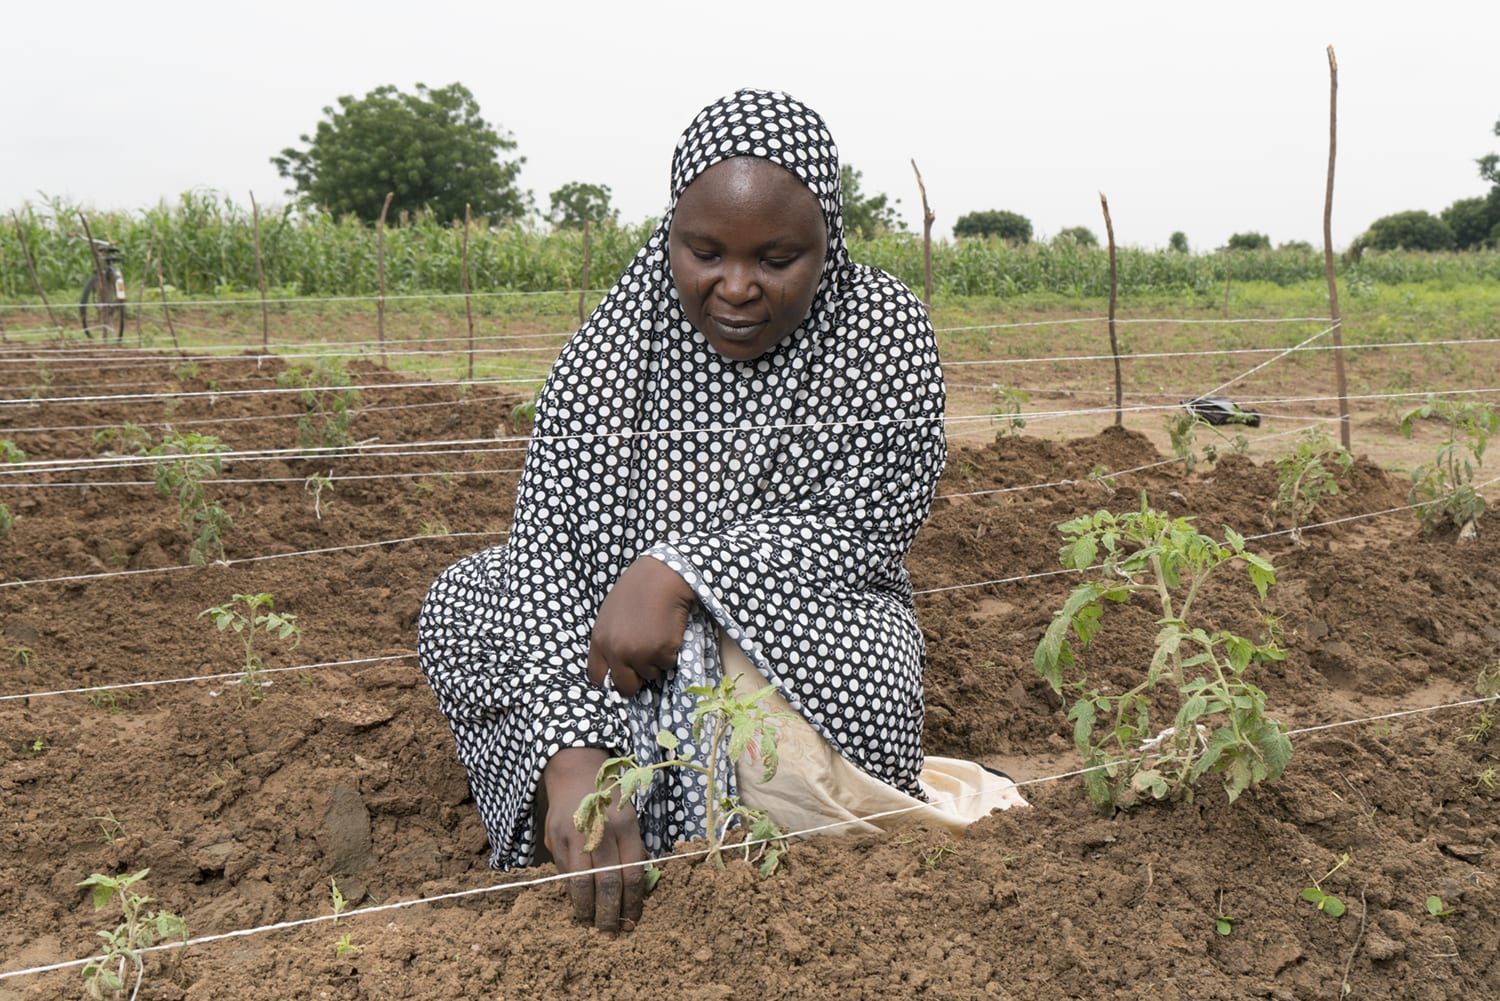 A tomato farmer in Nigeria